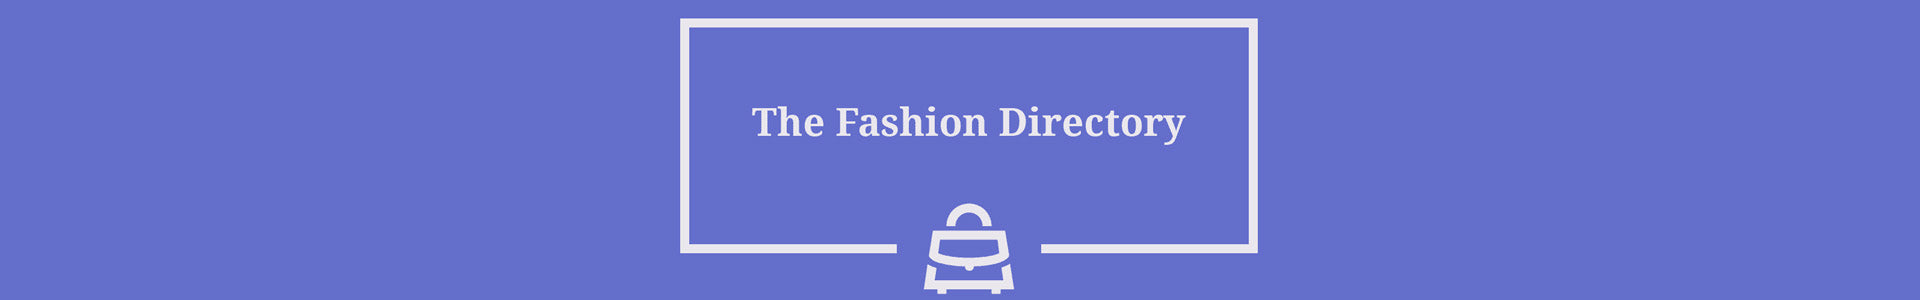 fashion_logo